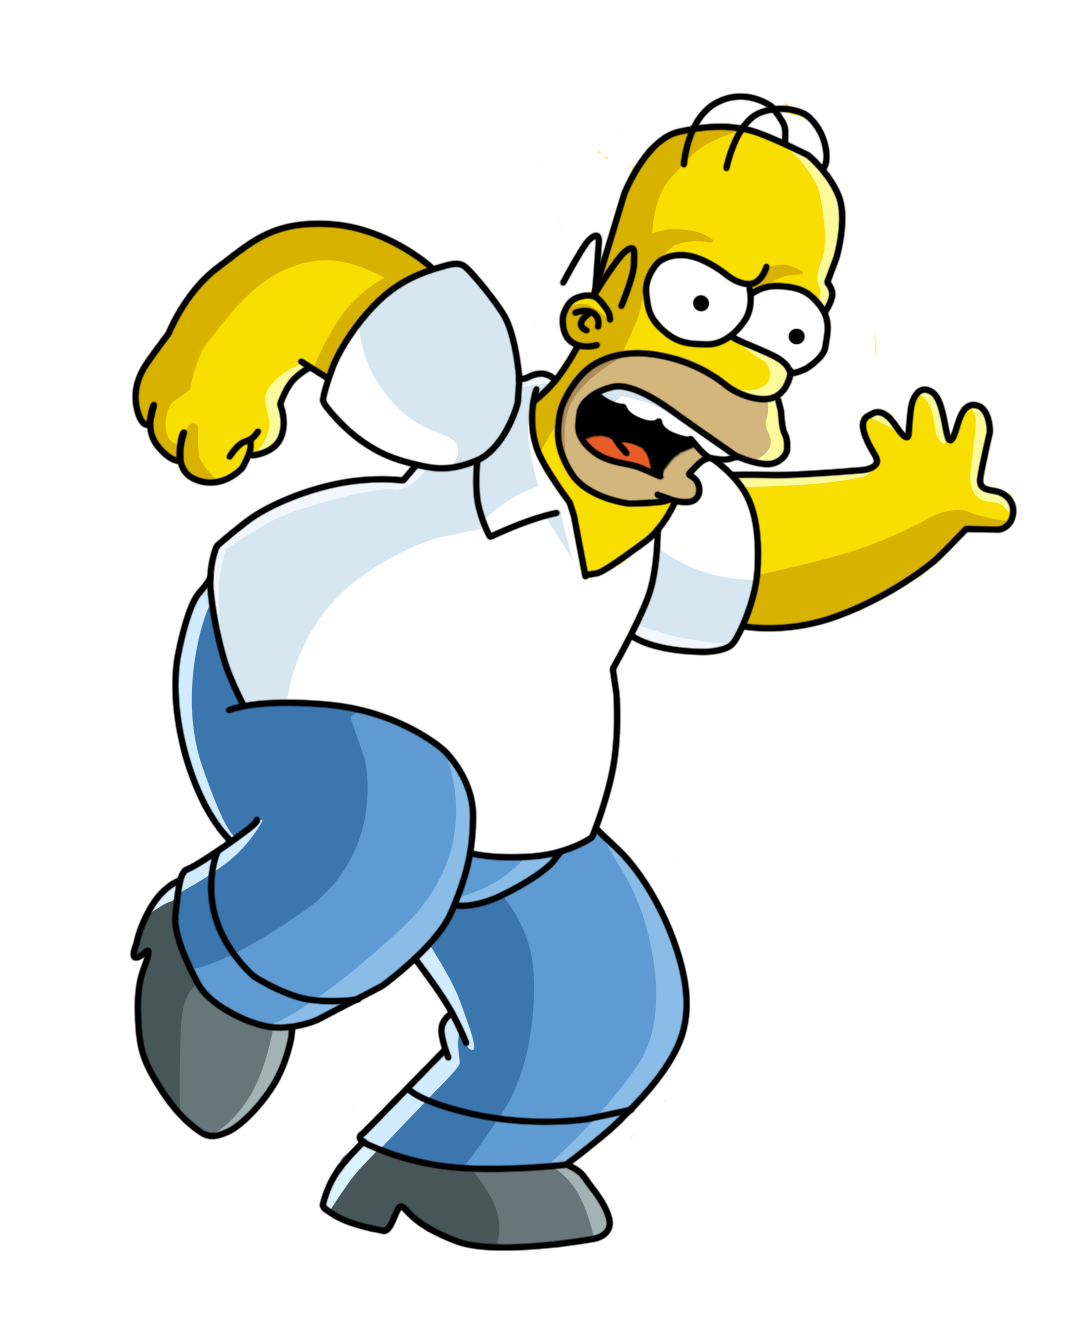 Drivers license clipart homer simpson. Png